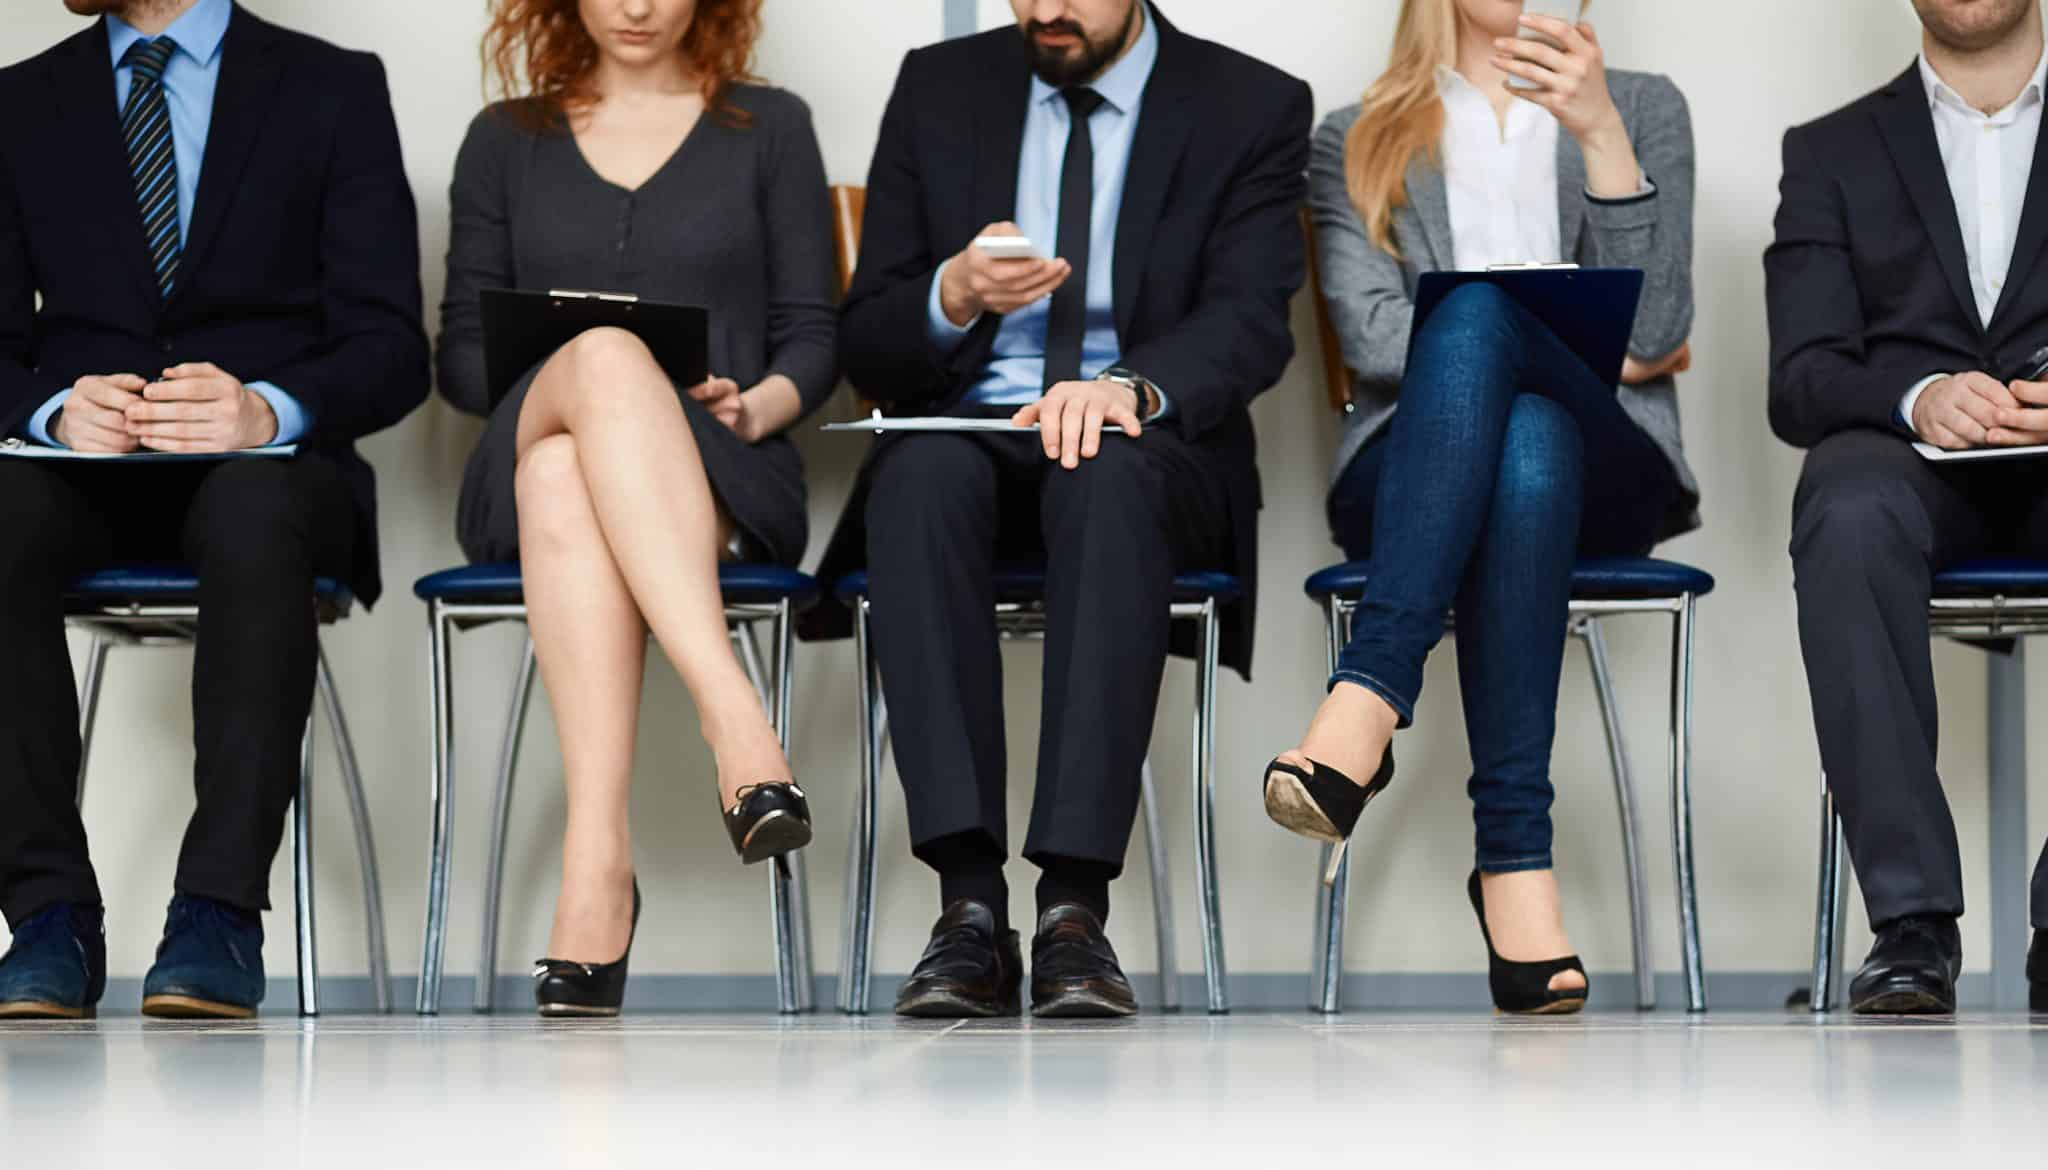 Hiring A Marketing Assistant: The Top 3 Qualities We Look For